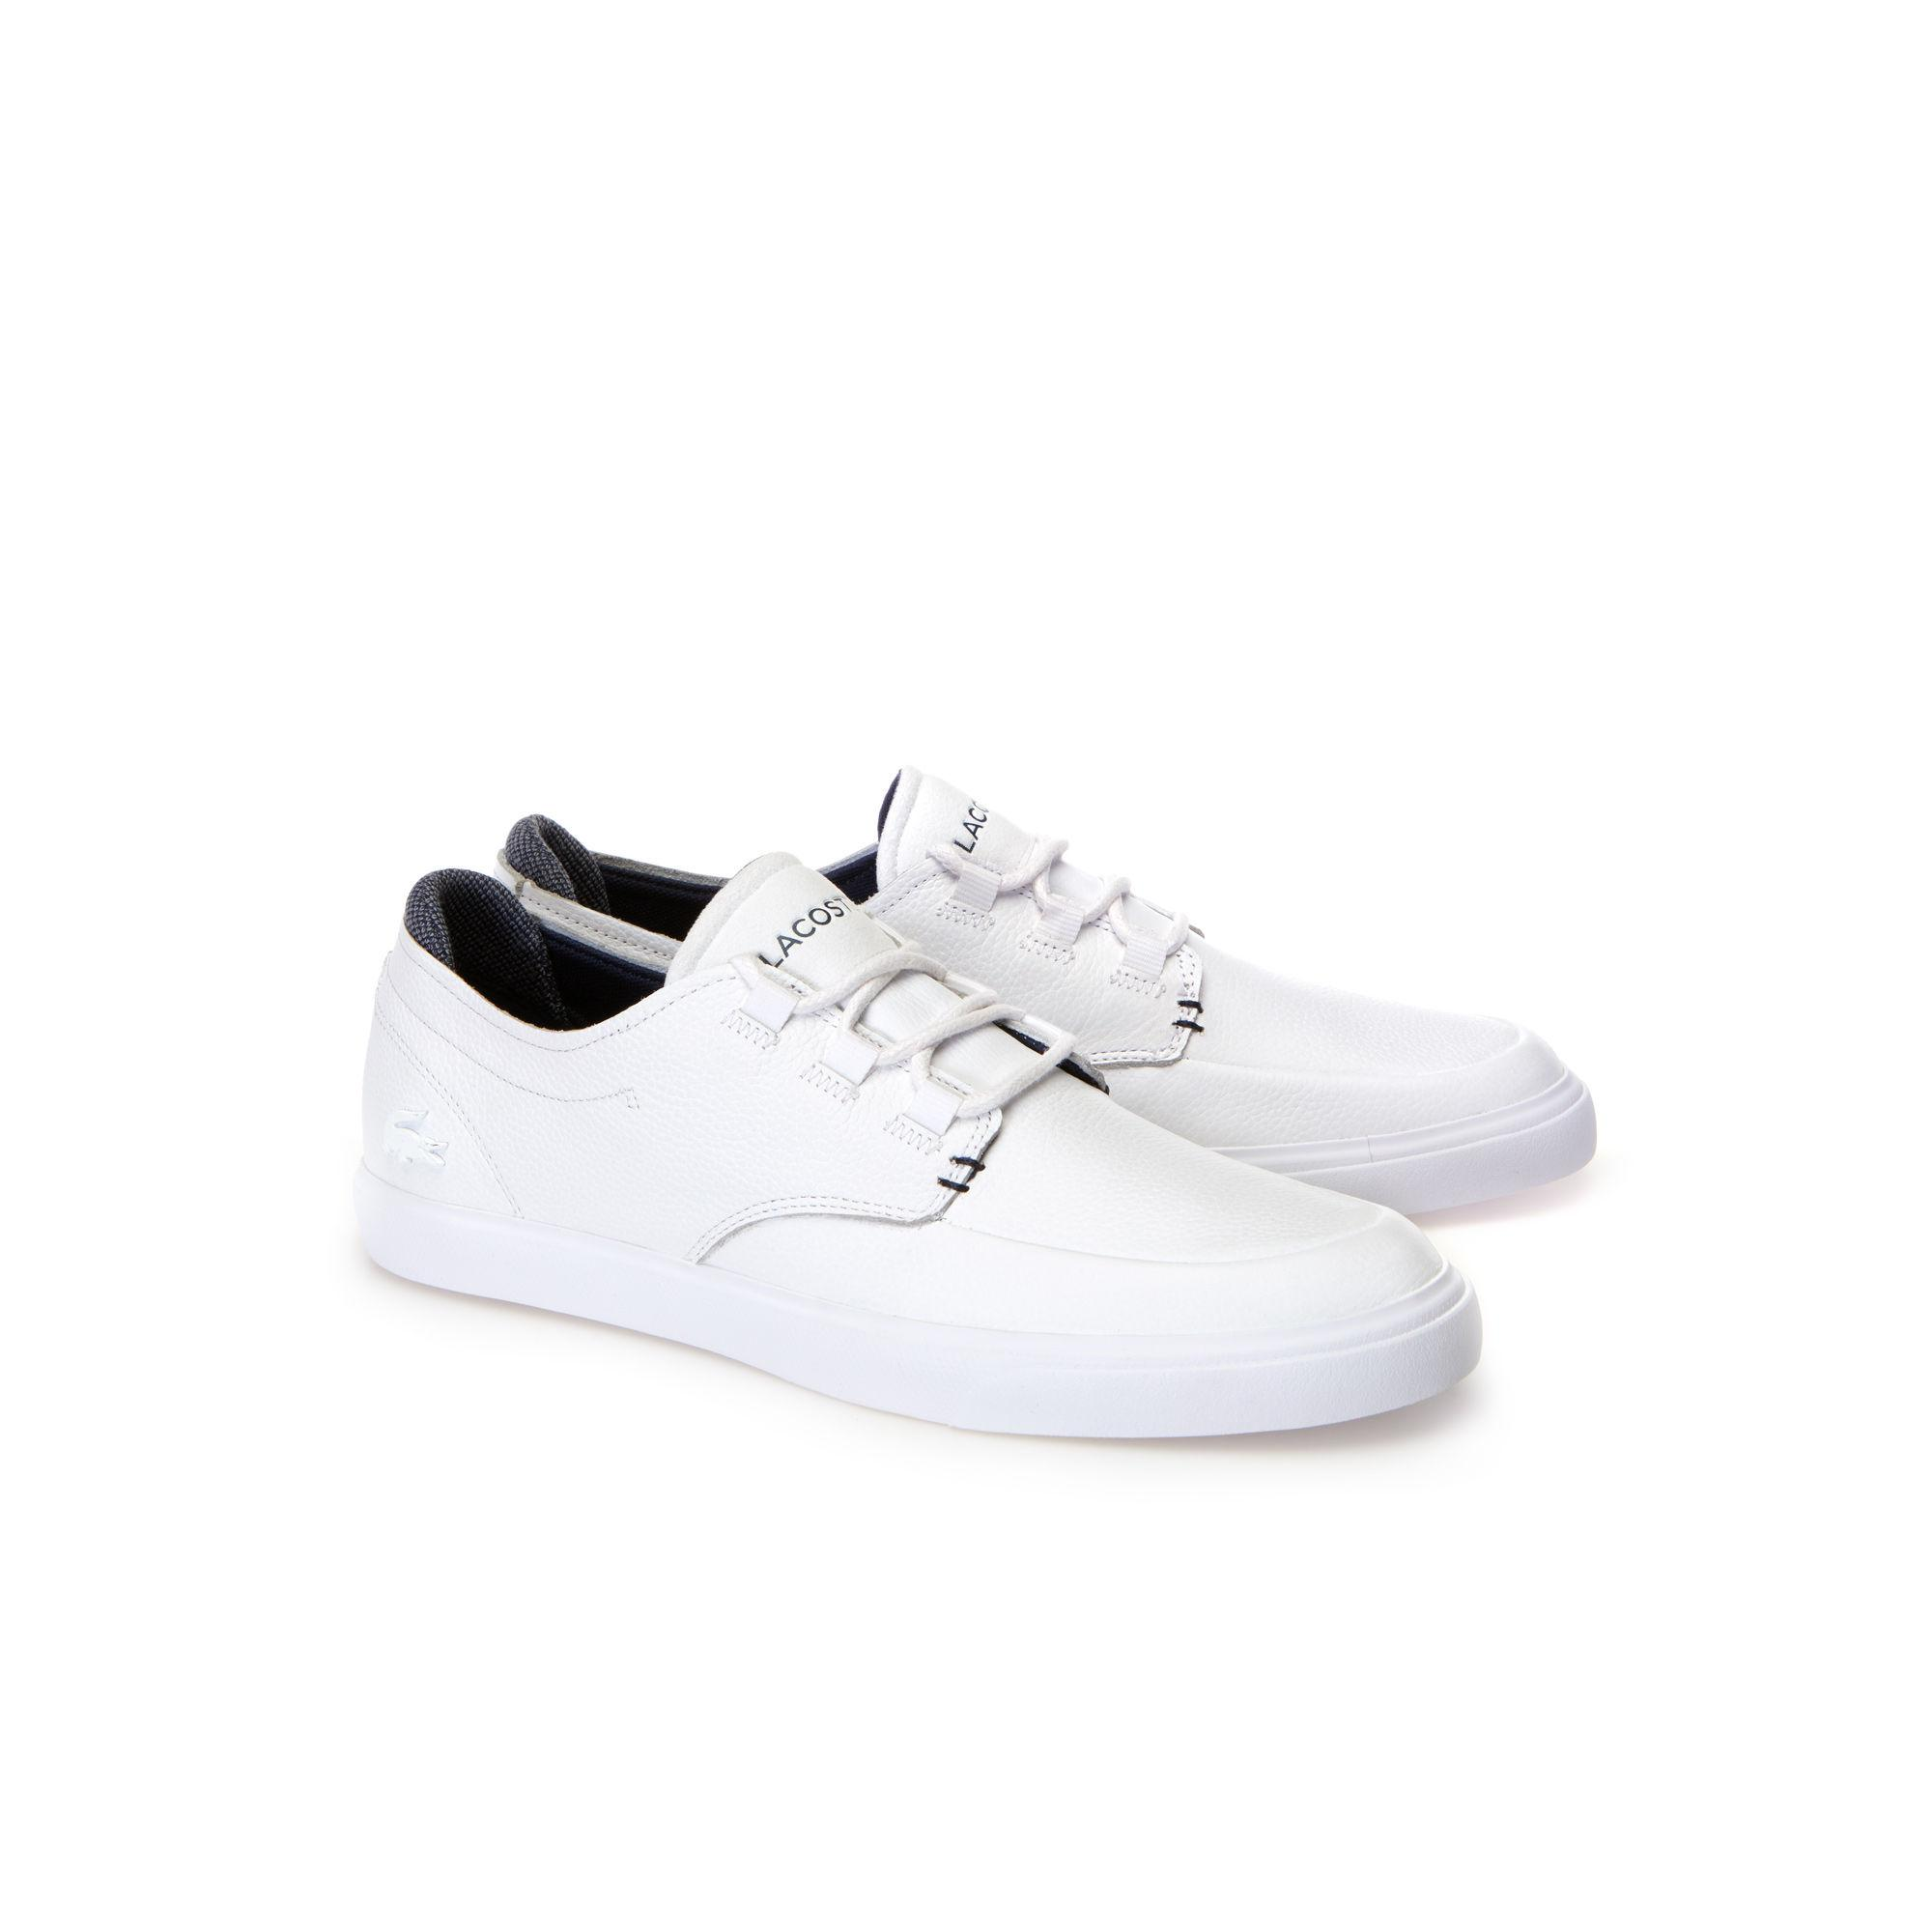 c549536c2 Lacoste White Shoes Lyst Esparre Men Leather In Deck For aFdYw